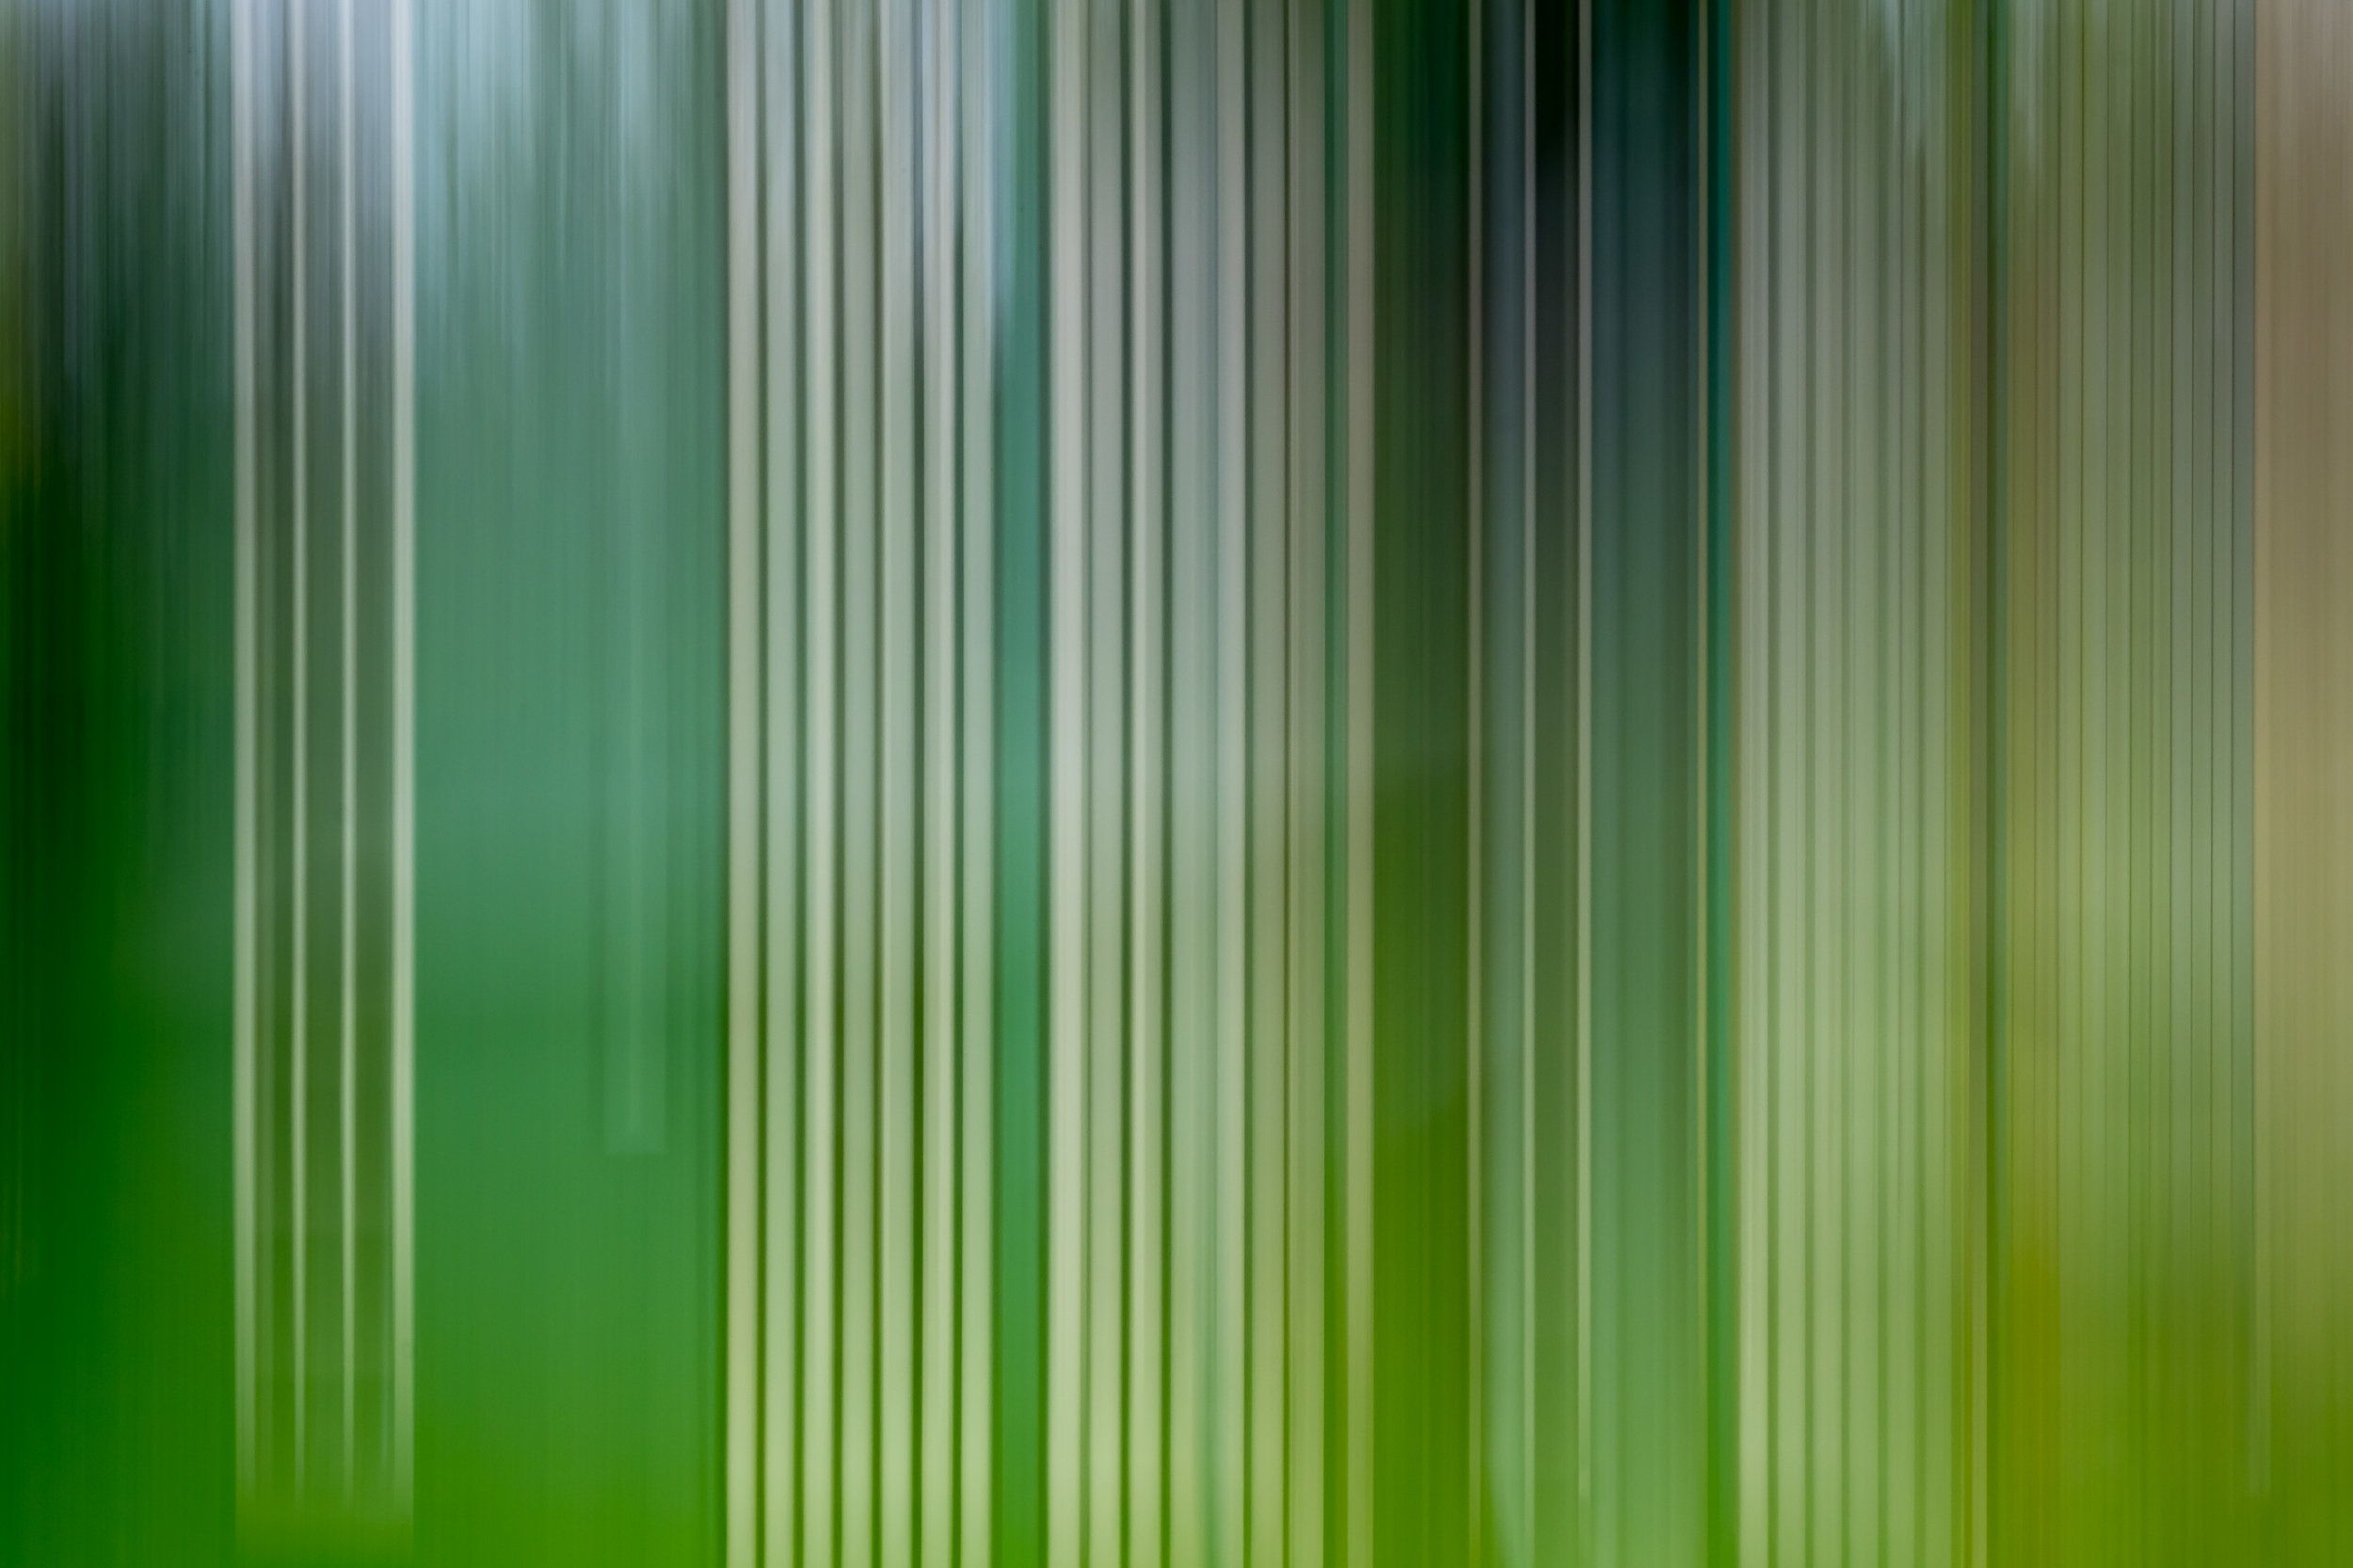 Abstract 1 | Green Bands